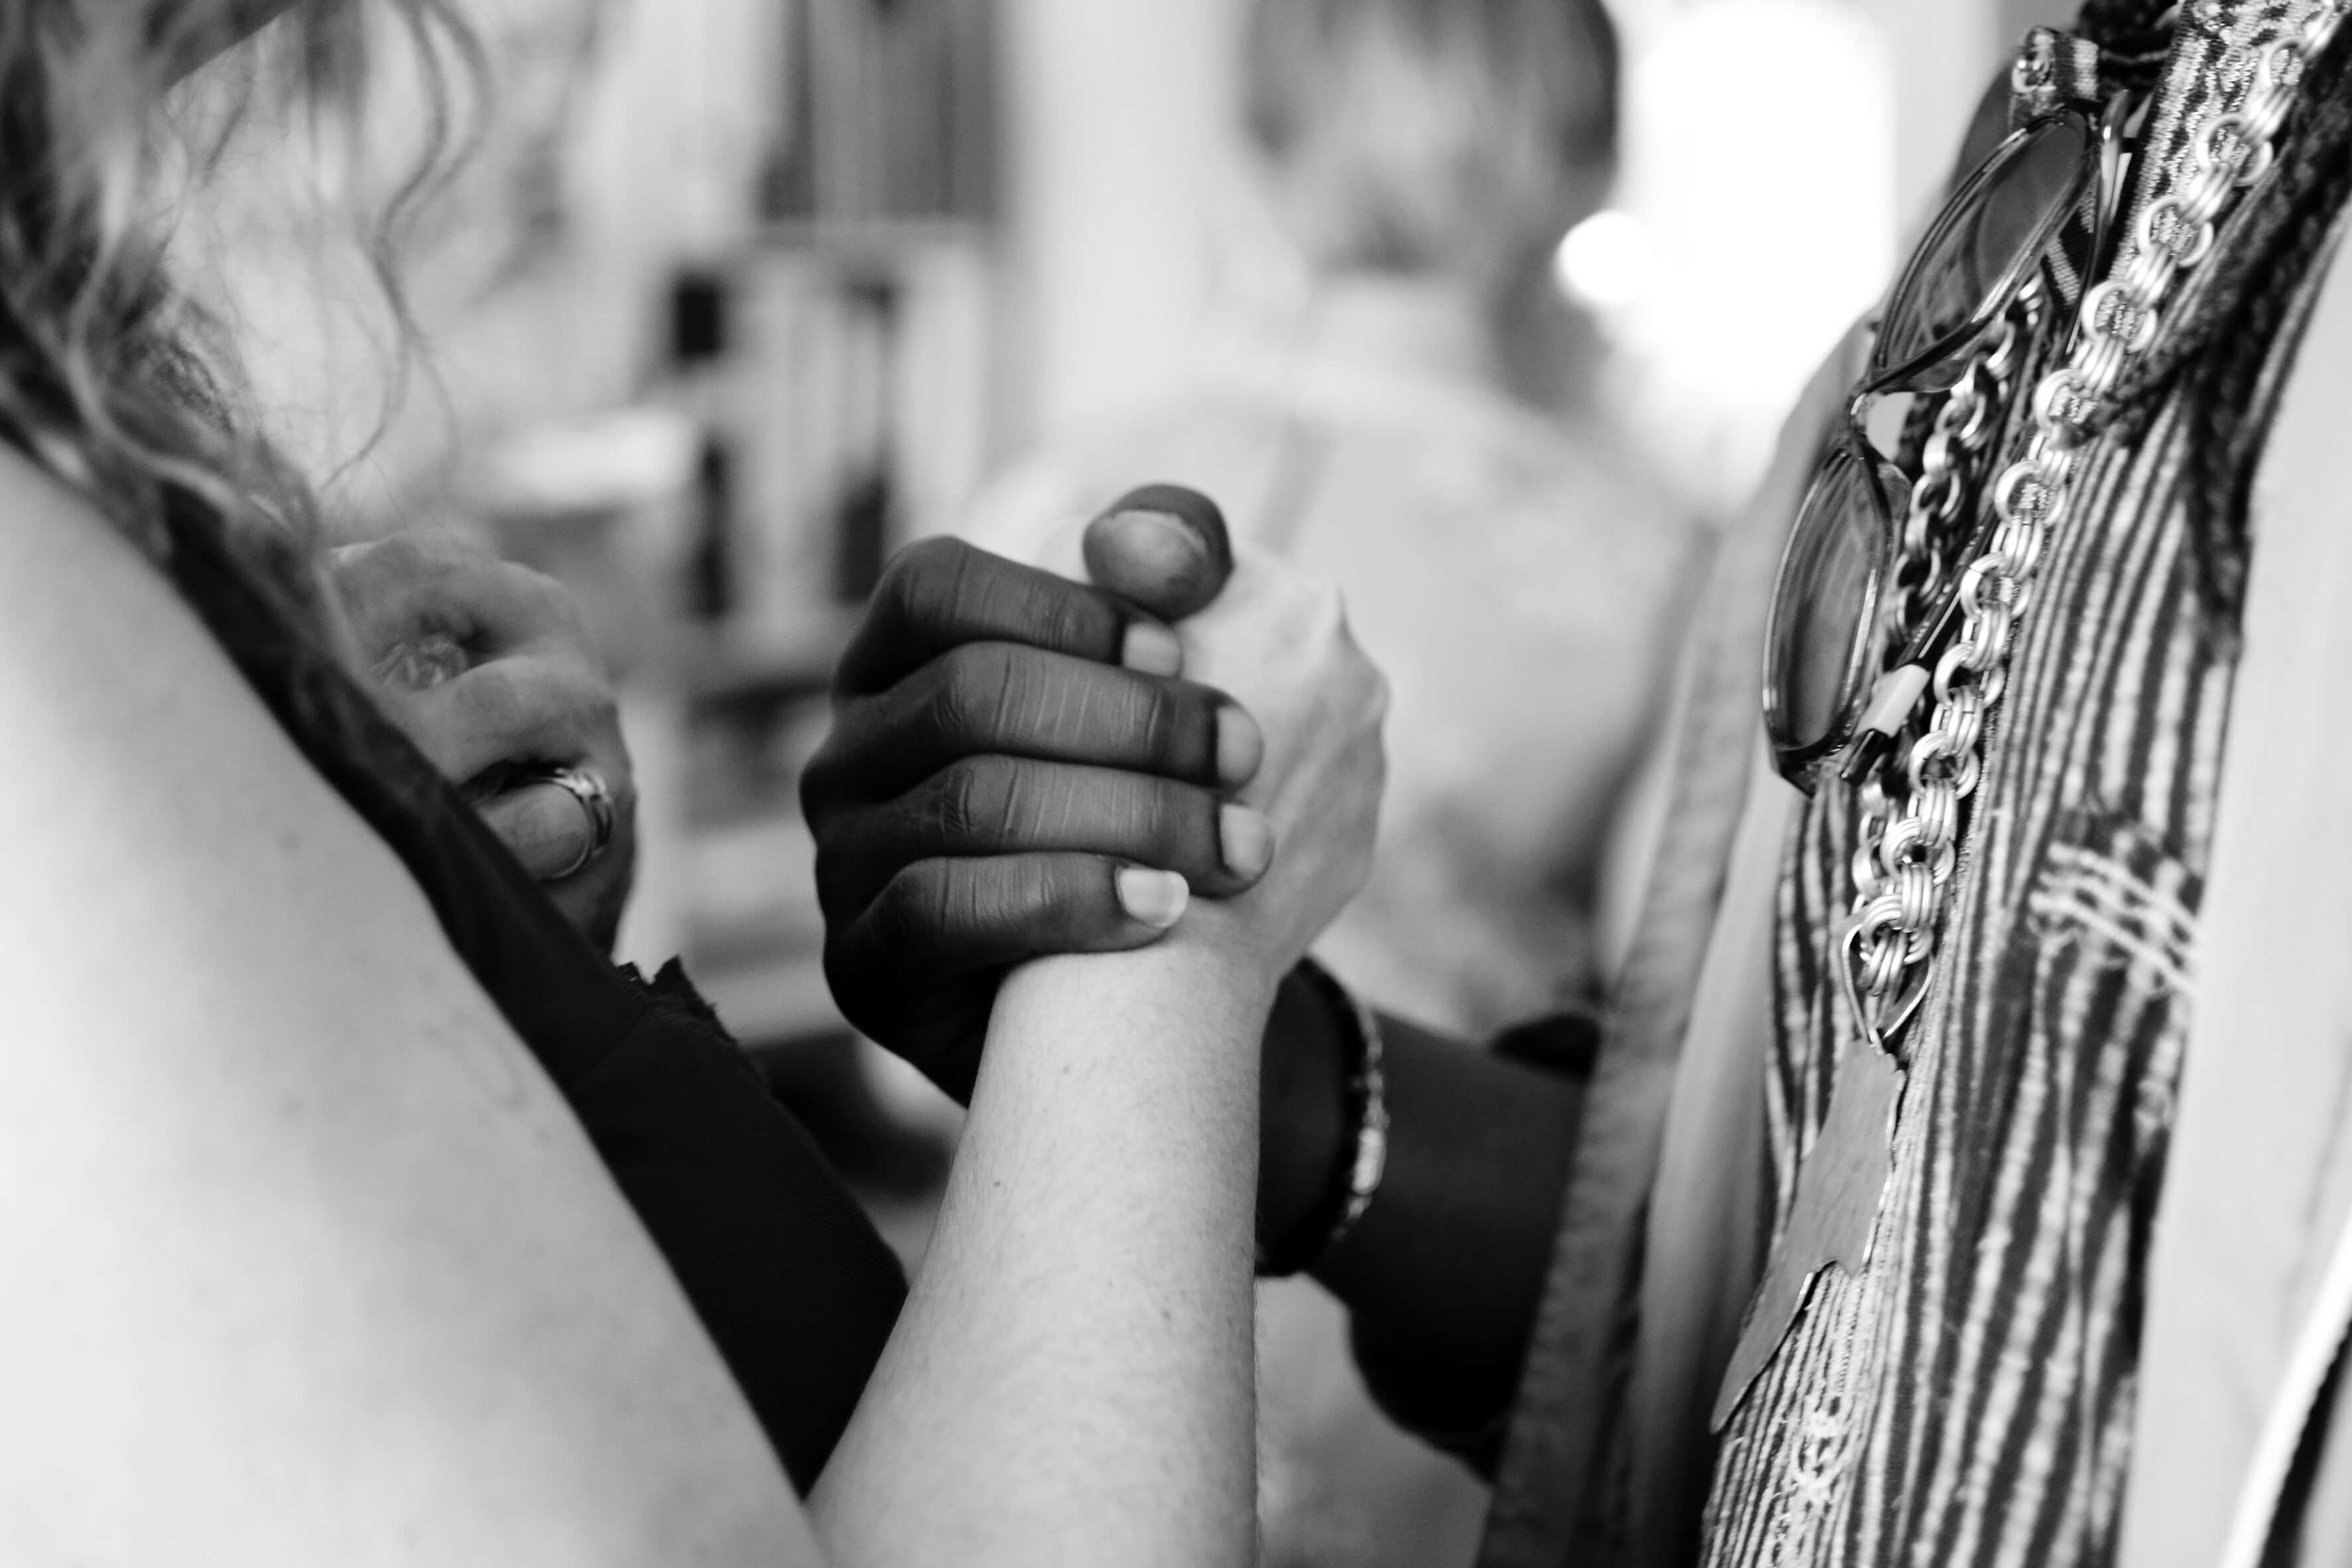 How to Use Empathy to Make a Social Impact